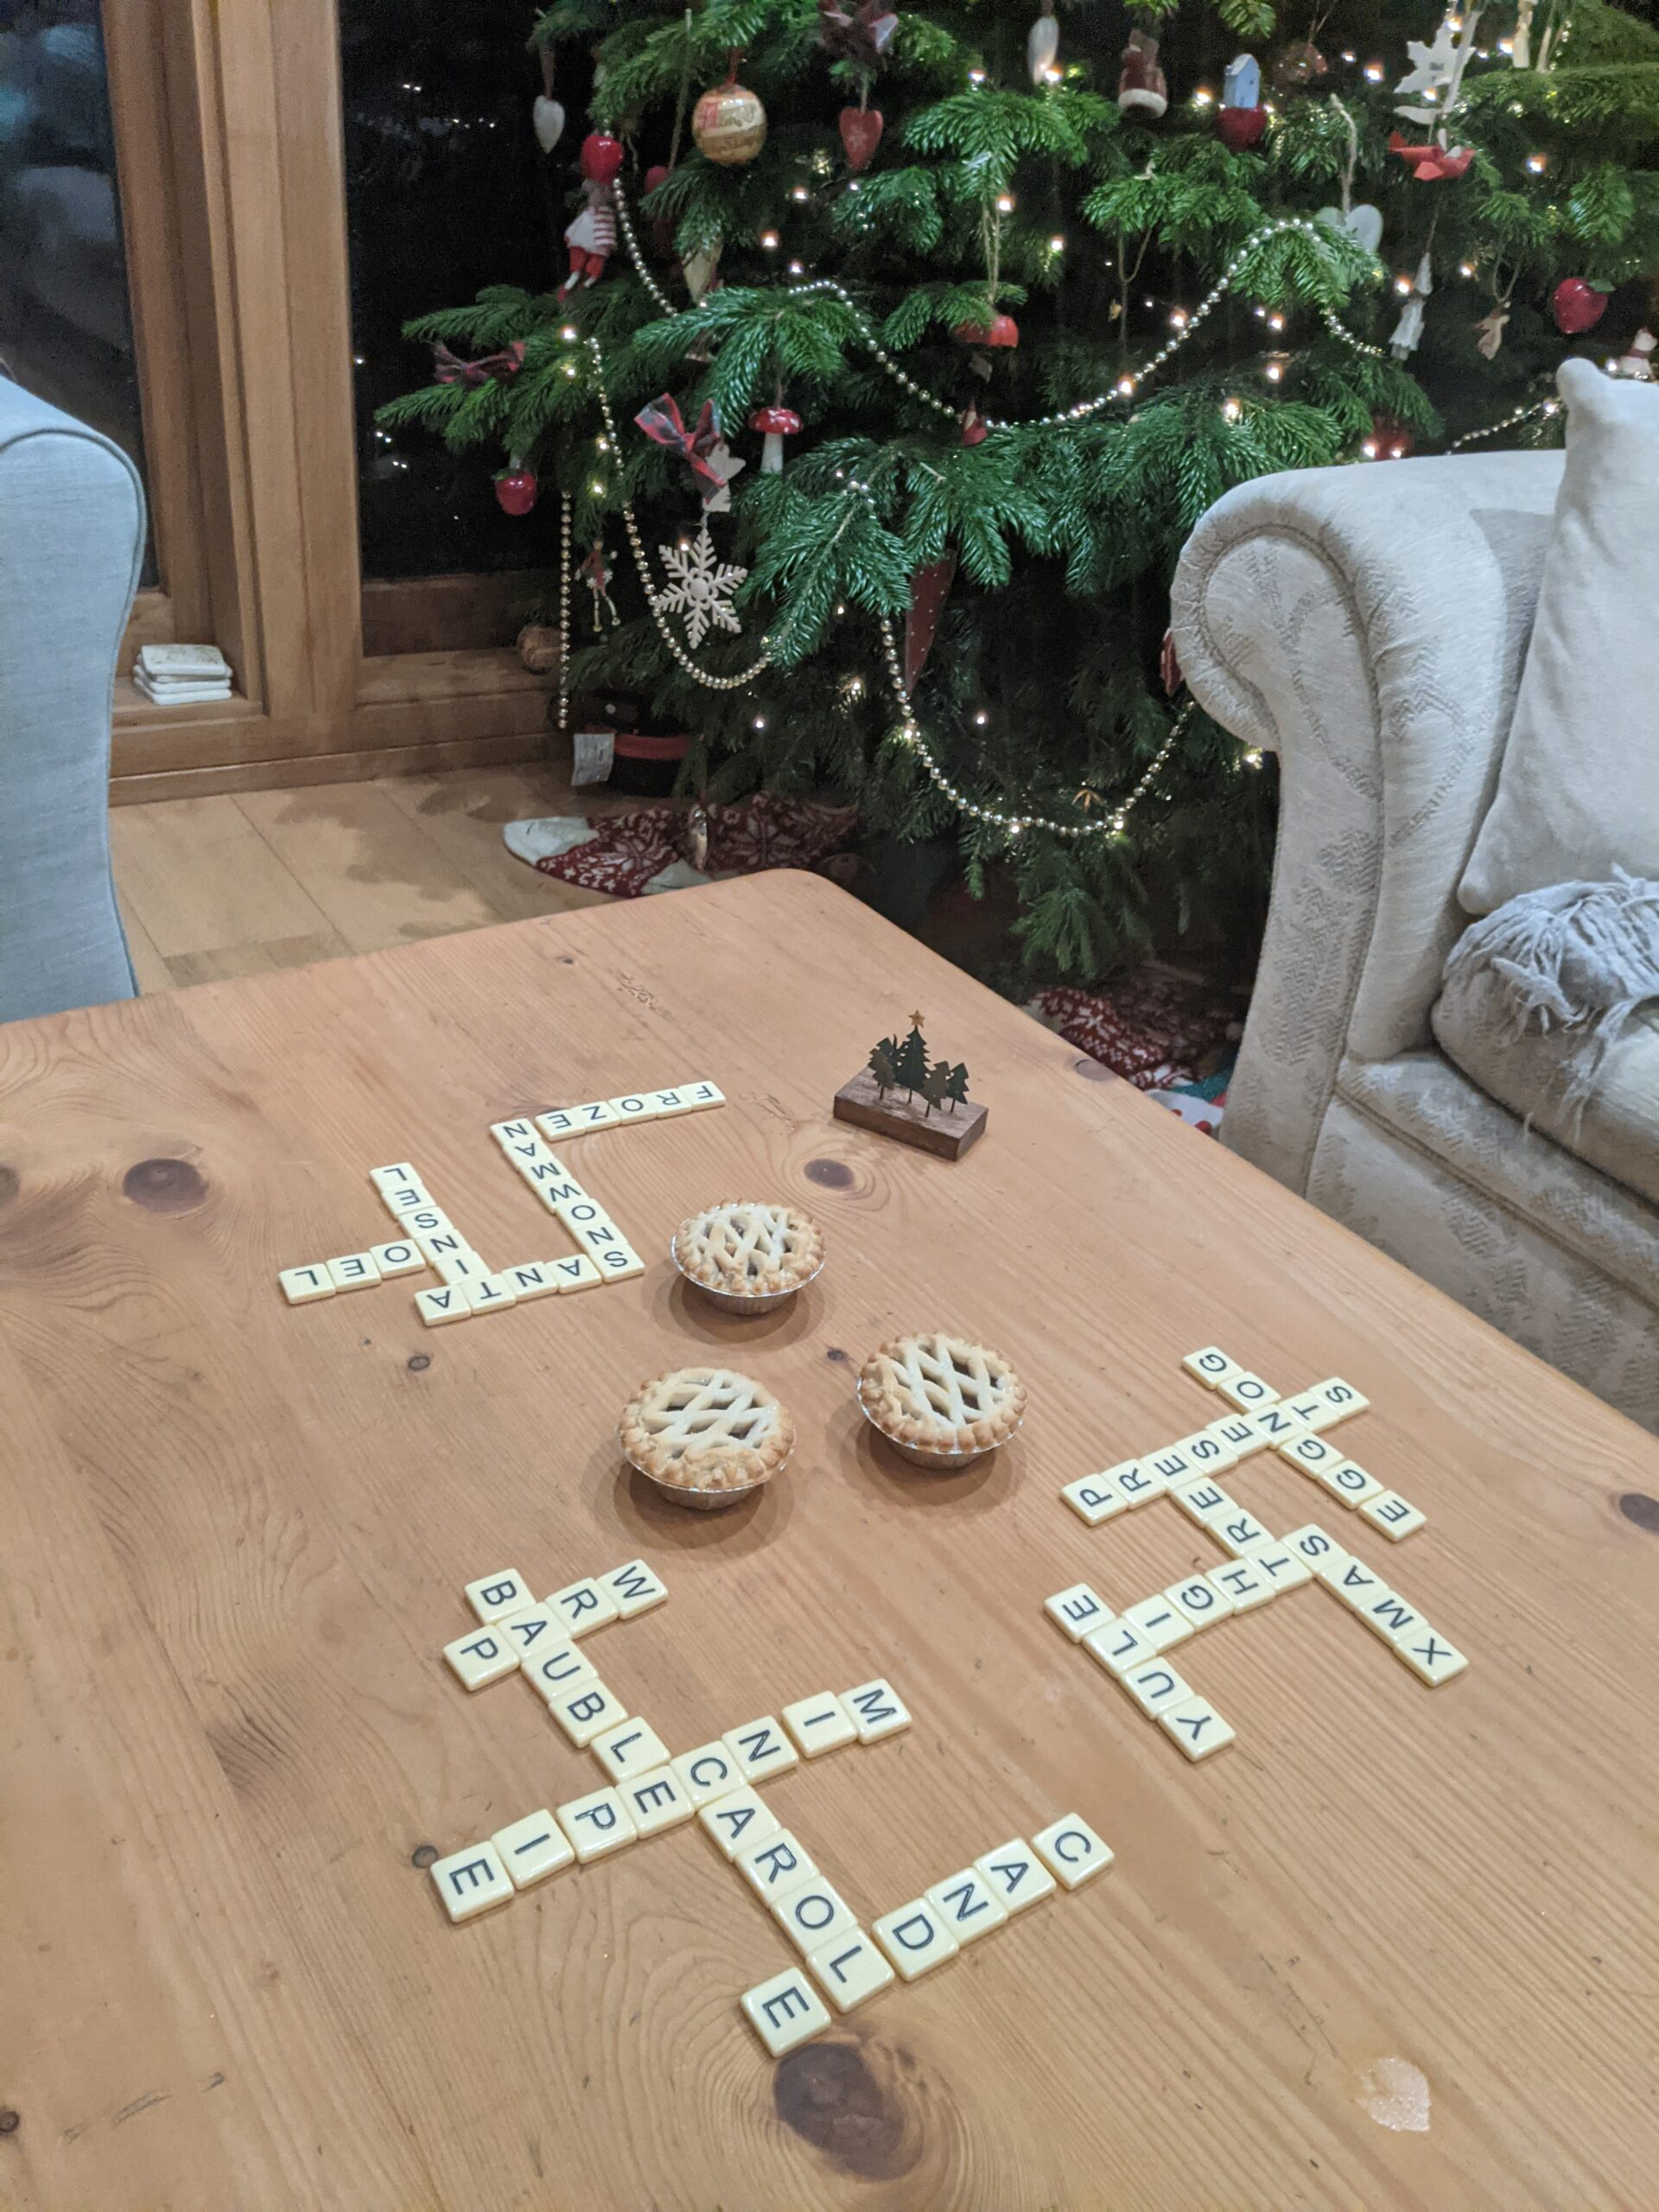 Coffe table with tiles spelling out christmas themed words, christmas tree in the back ground.